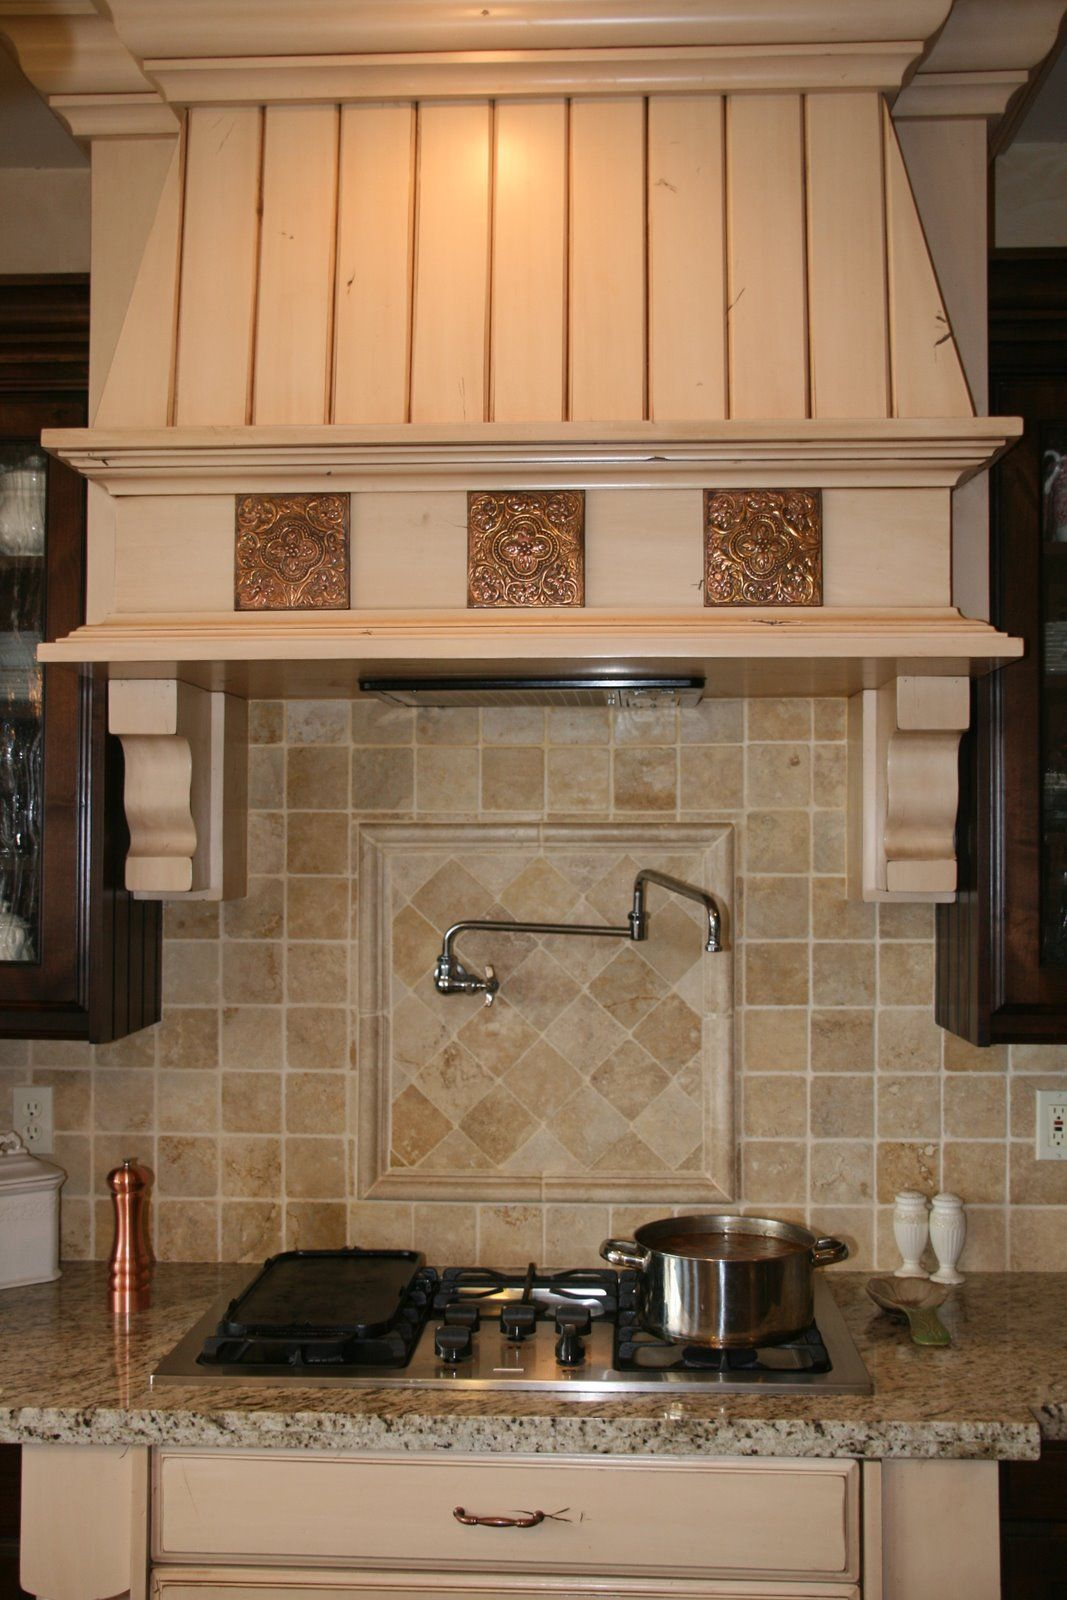 Stove With Water Faucet Cool Kitchen Appliances Cool Kitchens